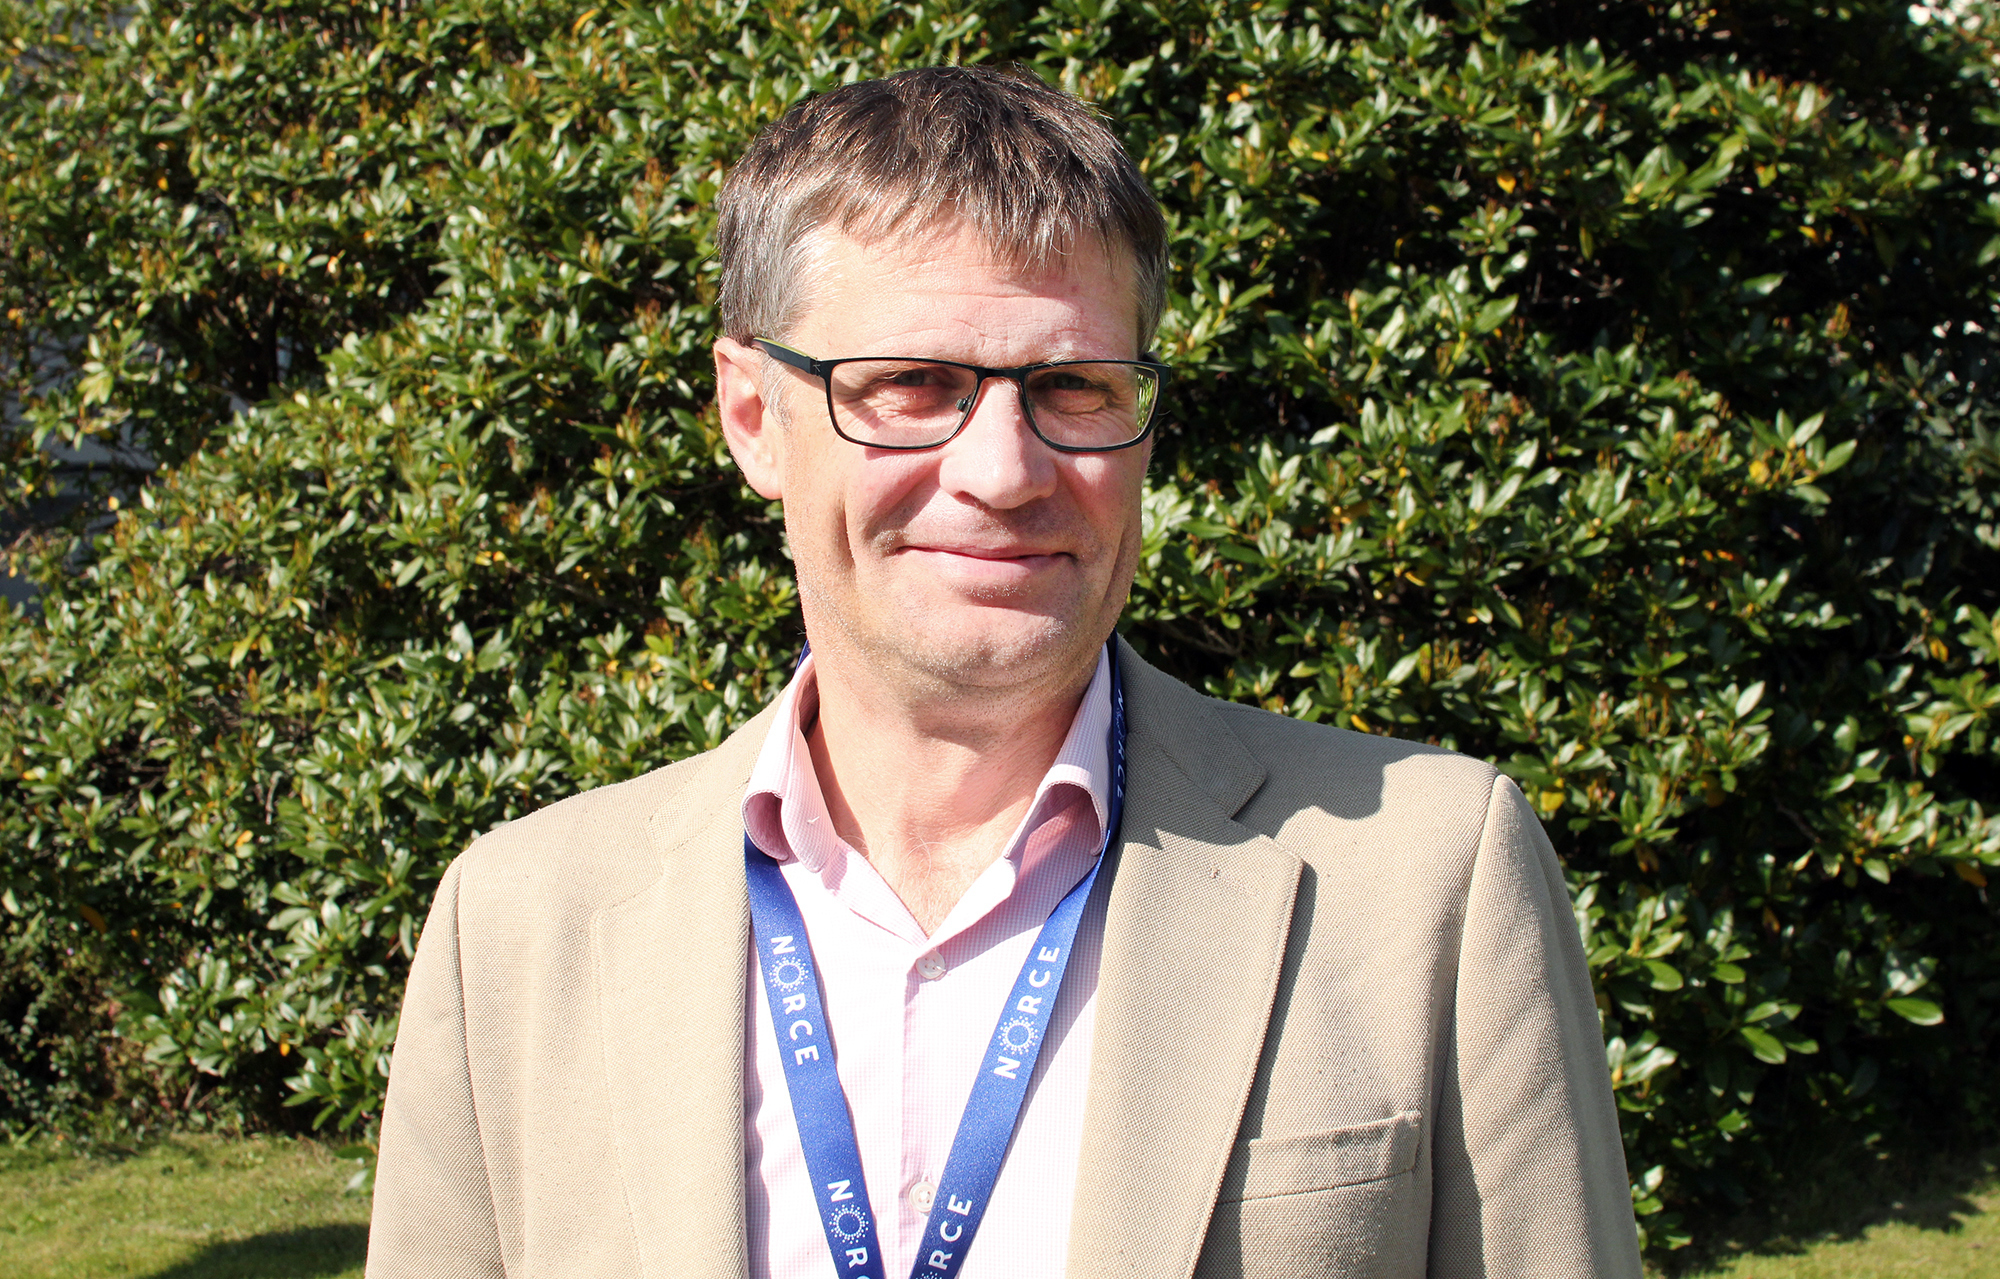 Richard Sanders, Researcher with NORCE and the Bjerknes Centre, and OTC director. (Photo: Andreas Hadsel Opsvik)